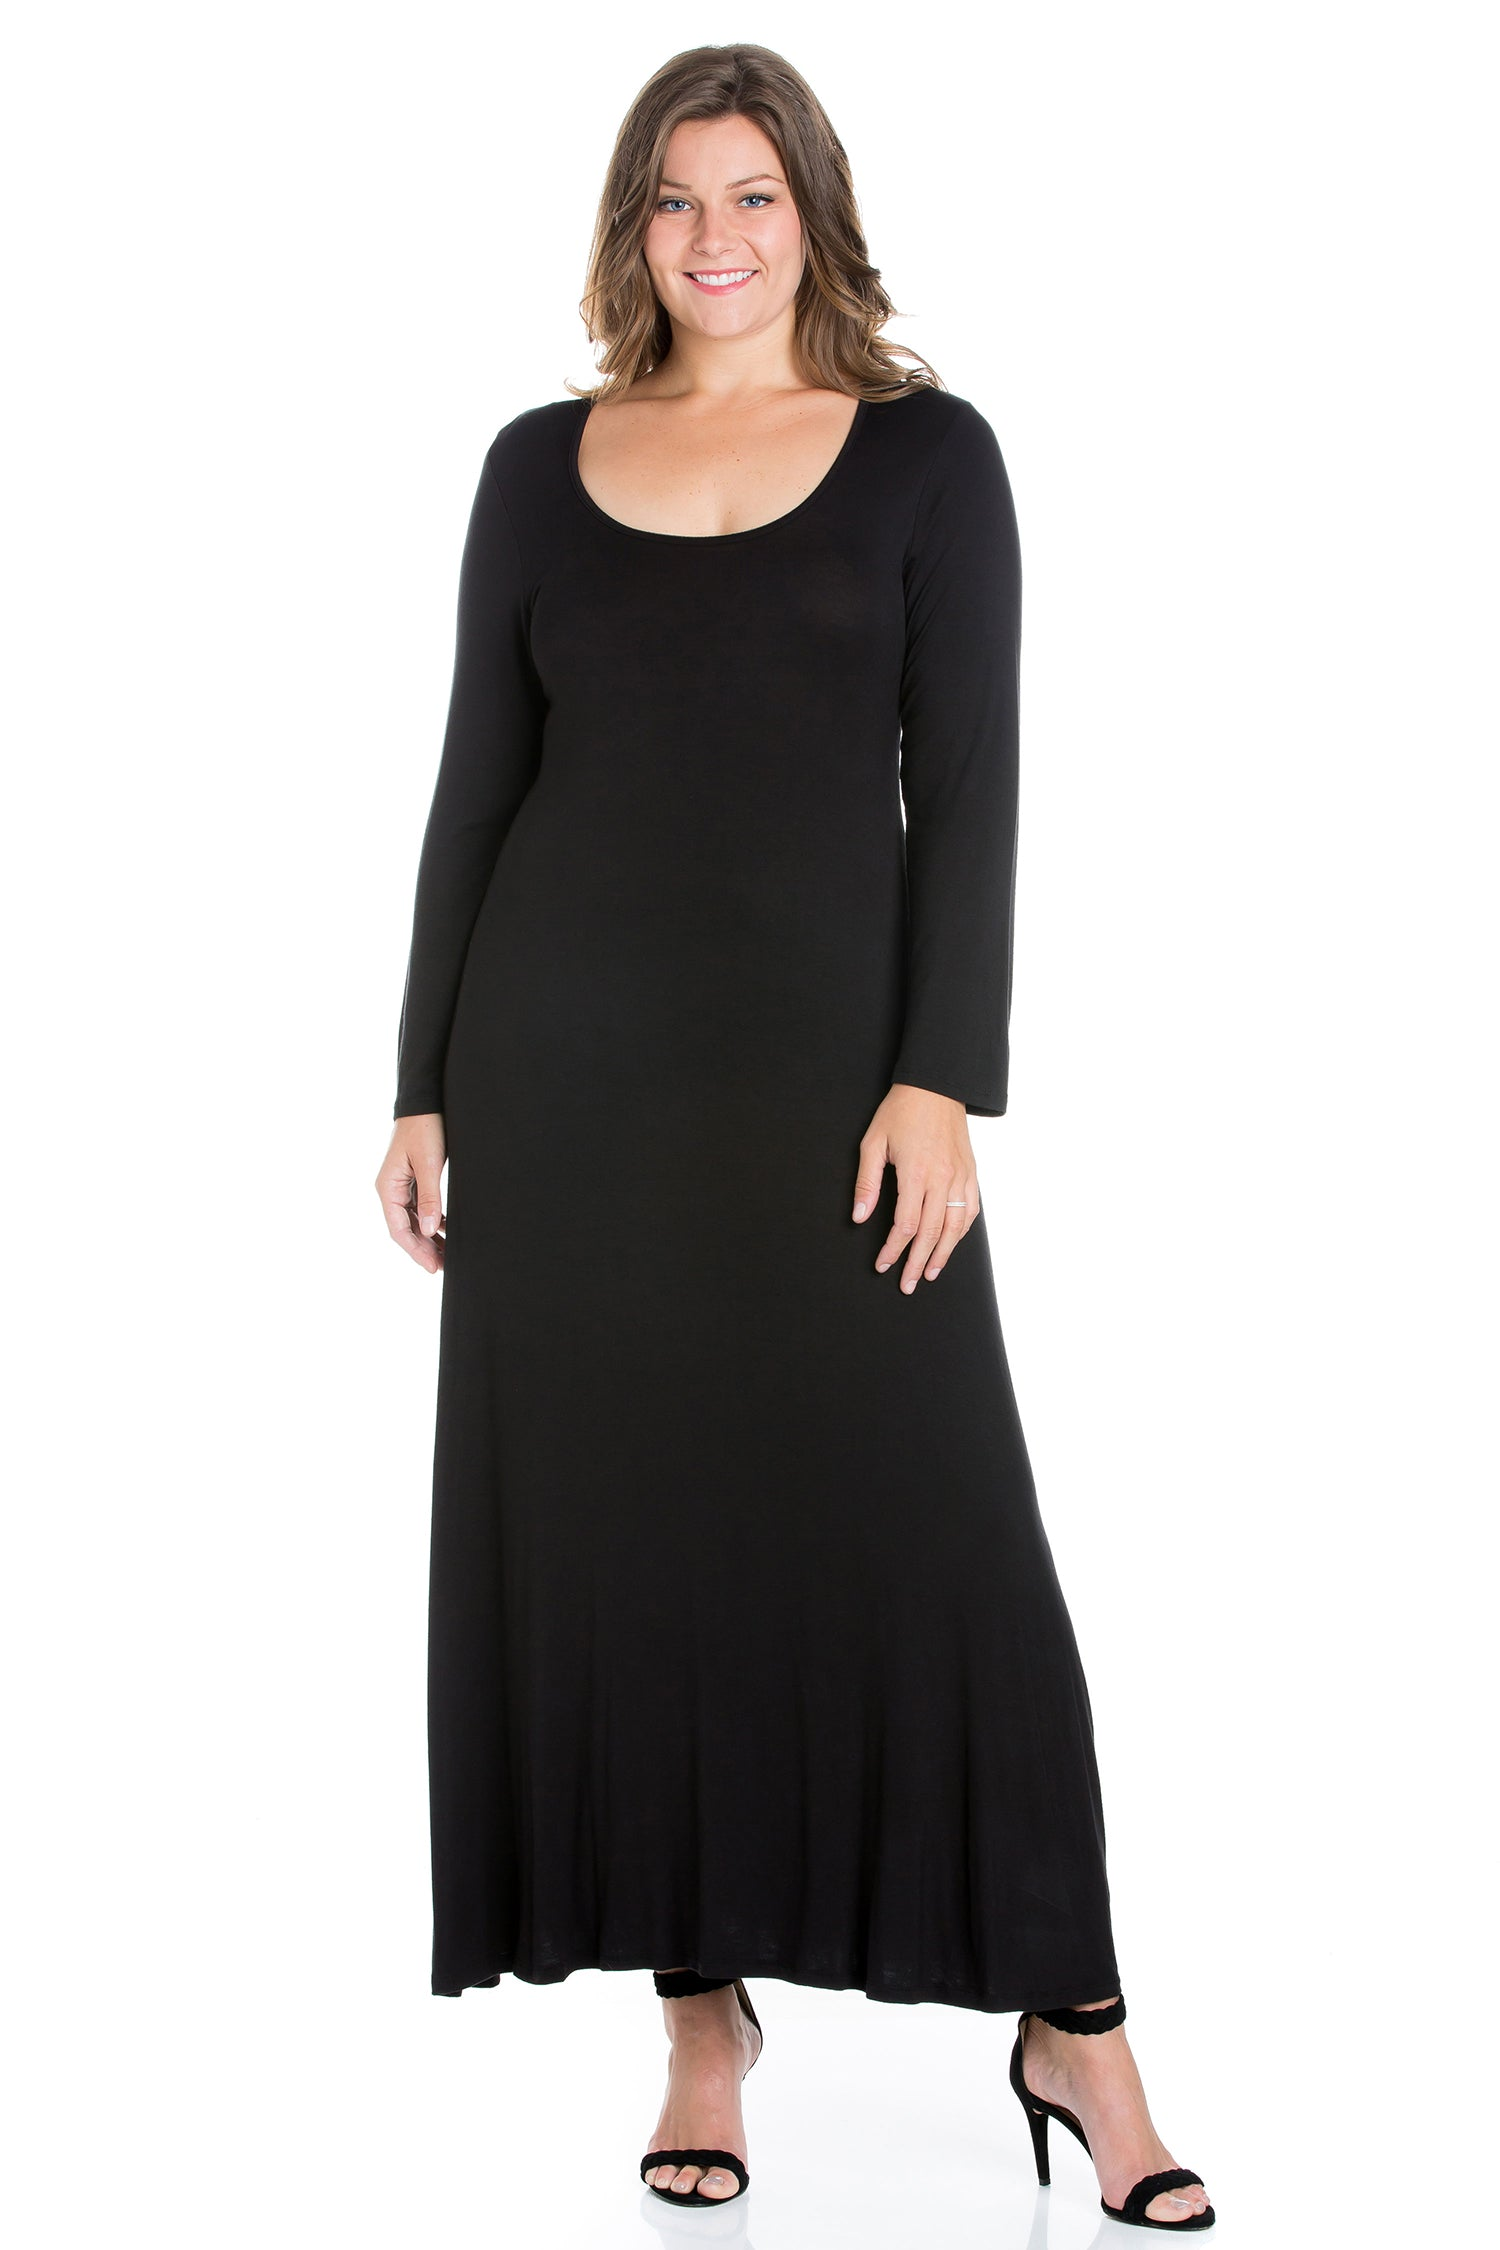 24seven Comfort Apparel Womens Long Sleeve Plus Size Maxi Dress-DRESSES-24Seven Comfort Apparel-BLACK-1X-24/7 Comfort Apparel